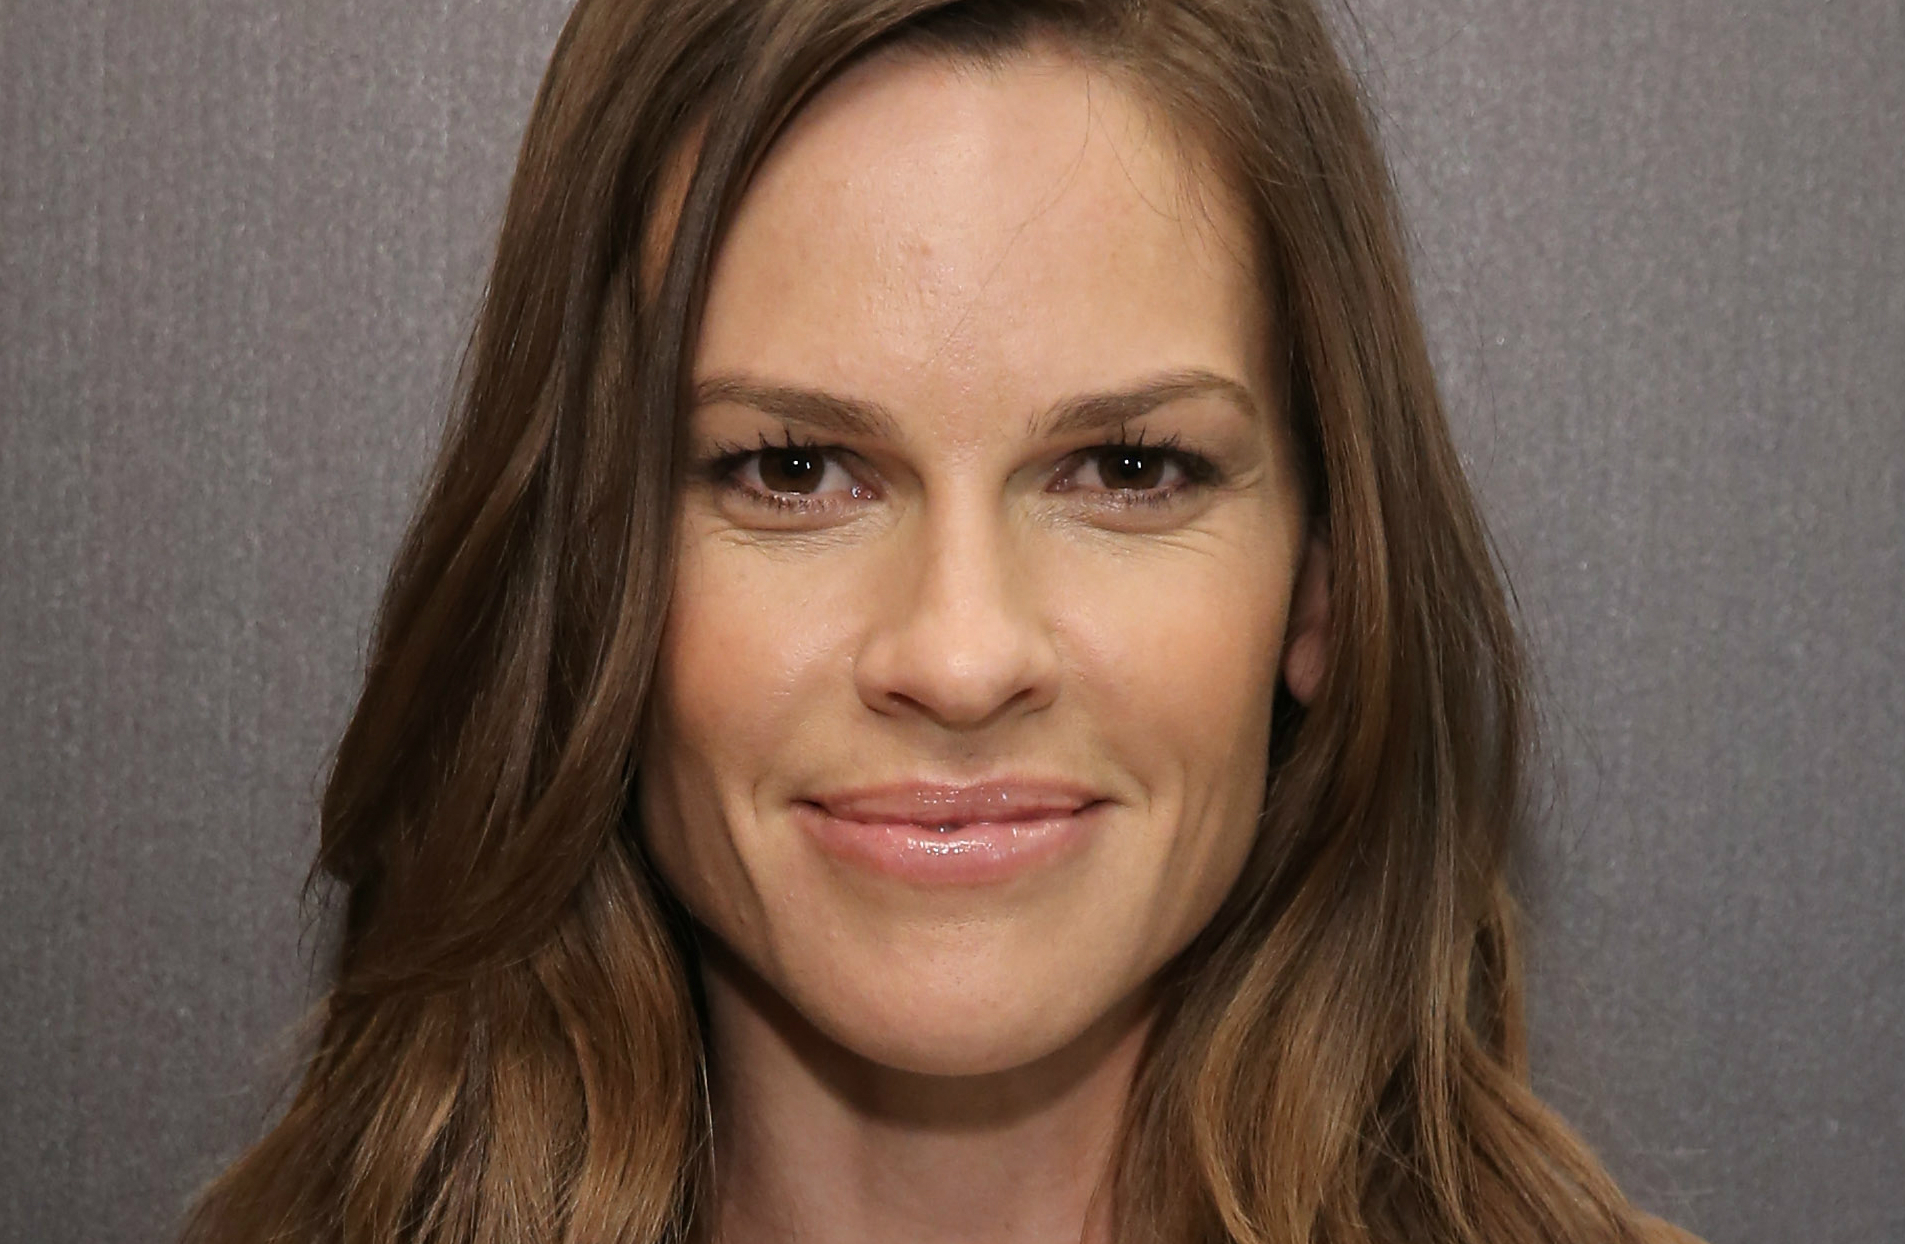 Hilary Swank cast in sci-fi thriller I Am Mother